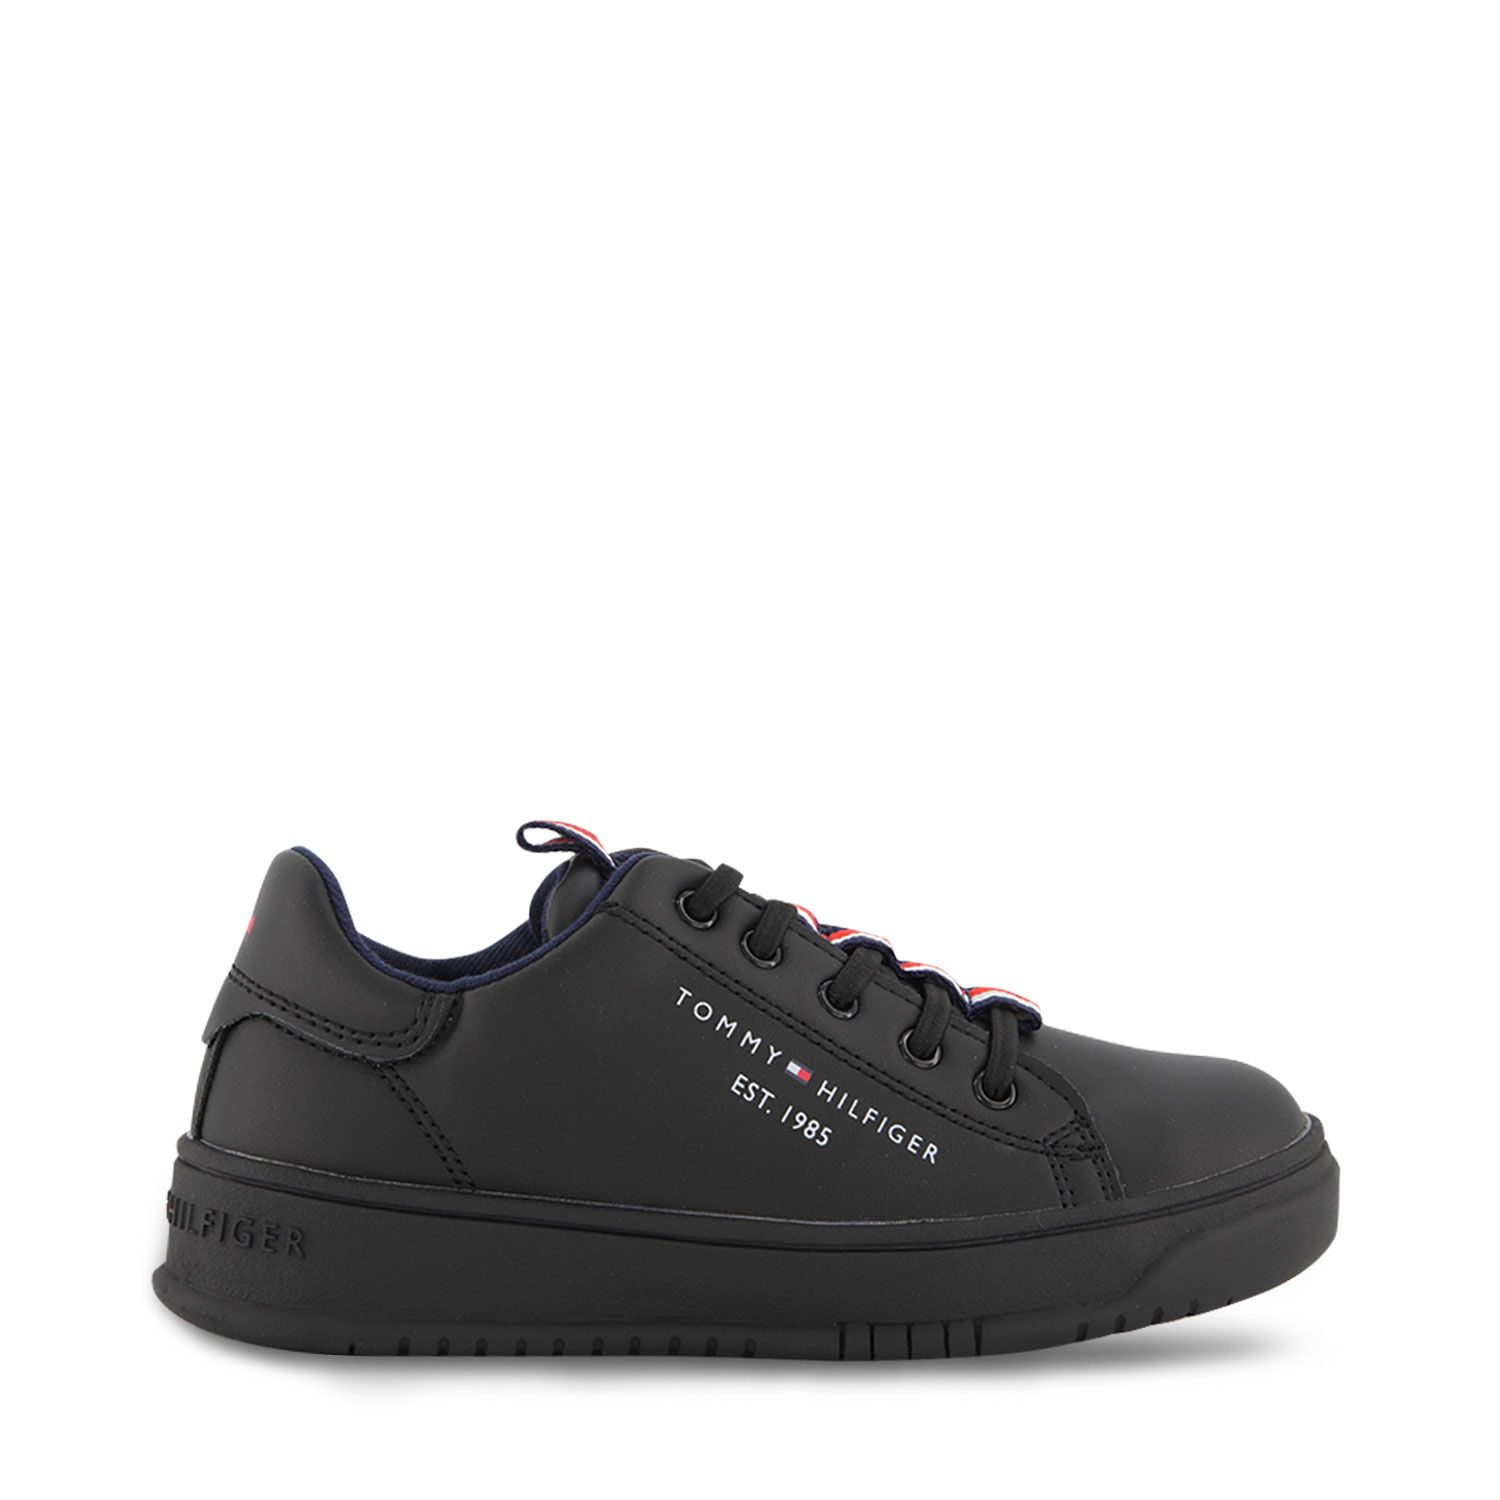 Picture of Tommy Hilfiger 32052 kids sneakers black